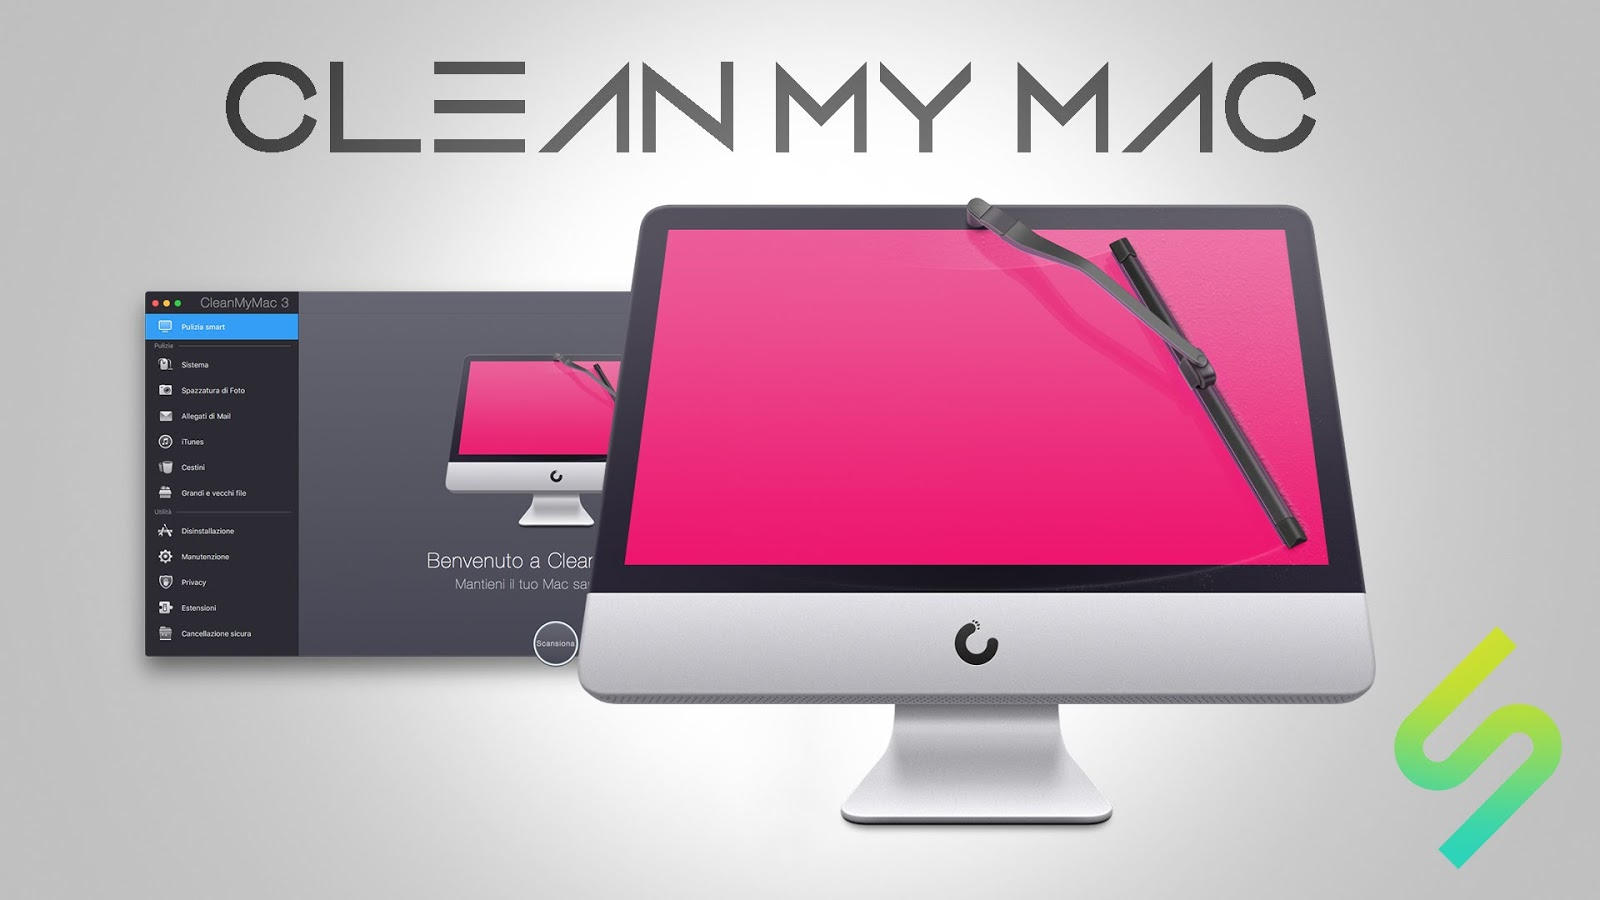 cleanmymac 3.9.2 activation key